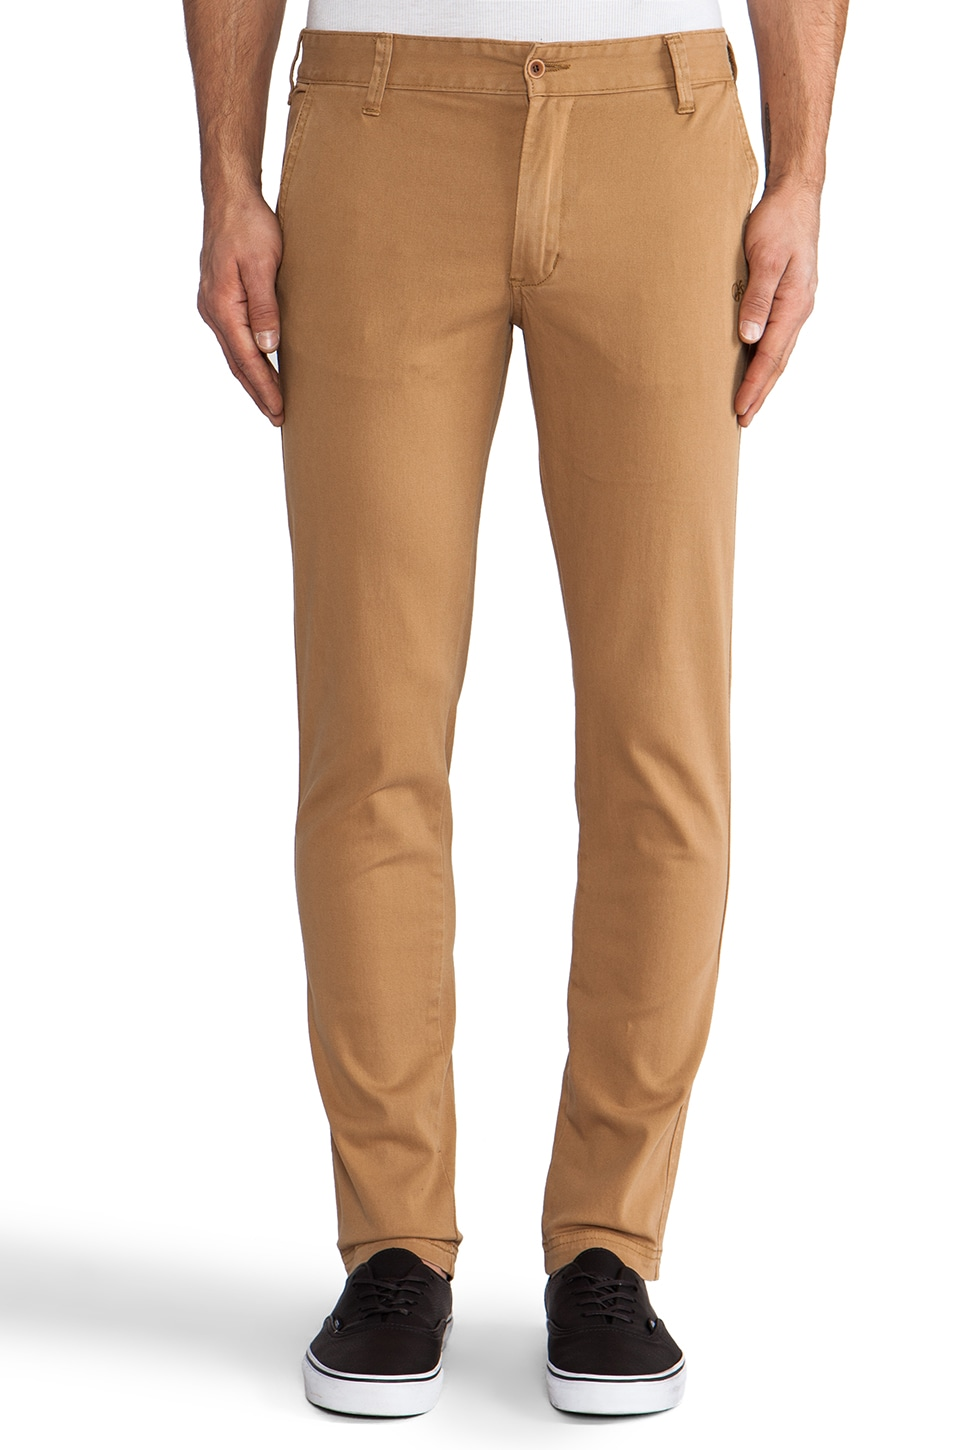 OURS Ty Skinny Chino in Mustard